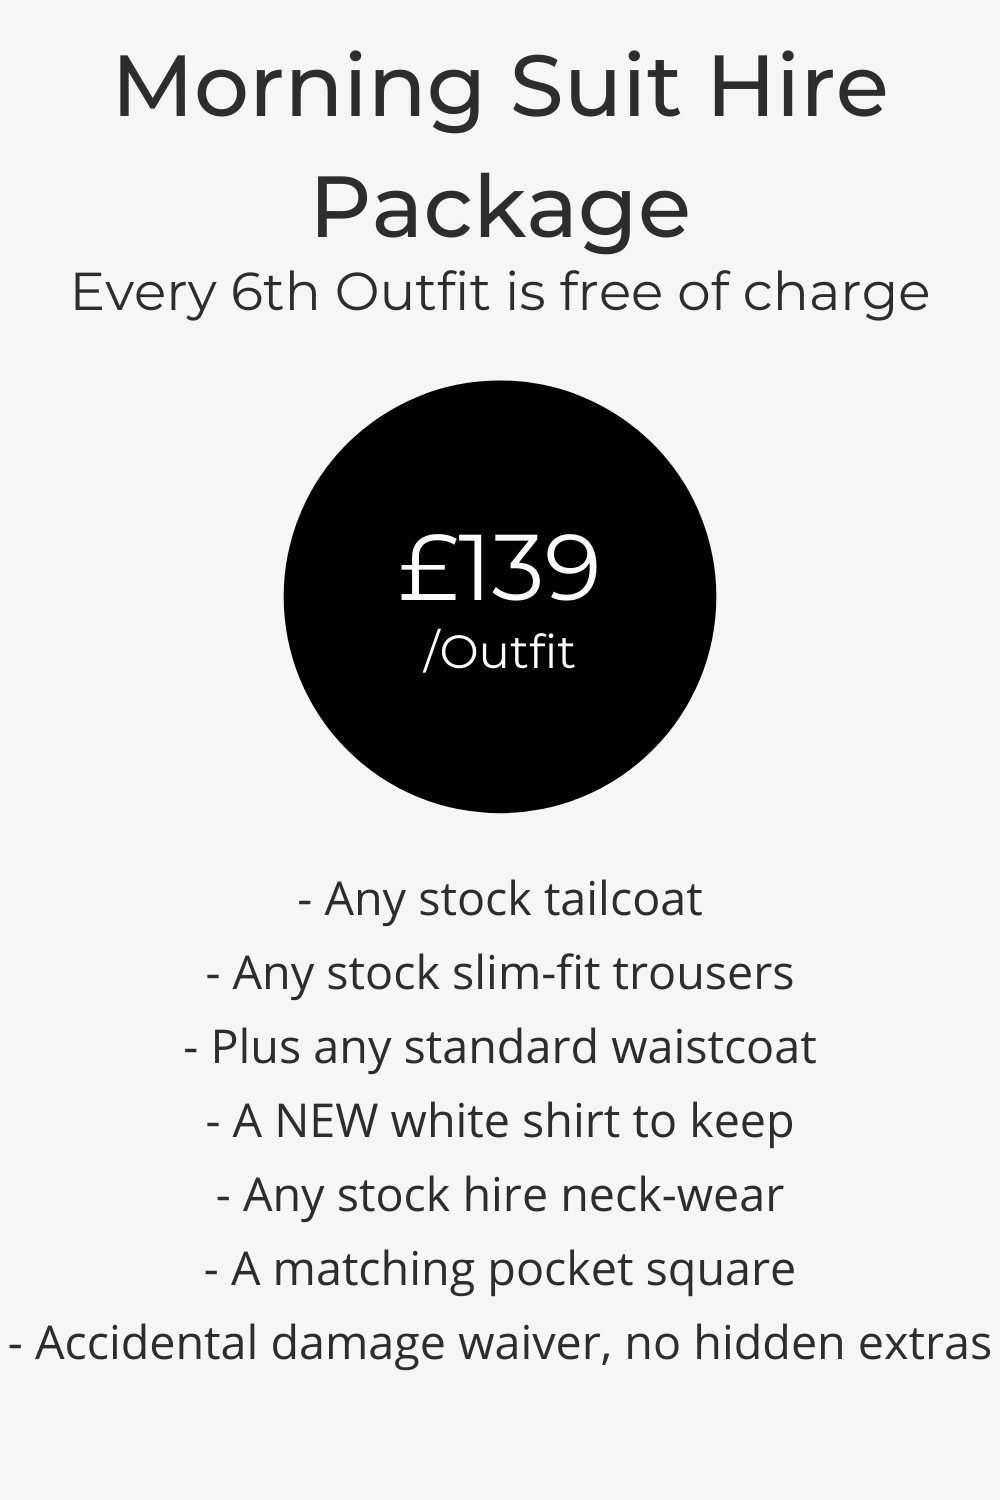 Wedding Morning Suit Hire Pricing List